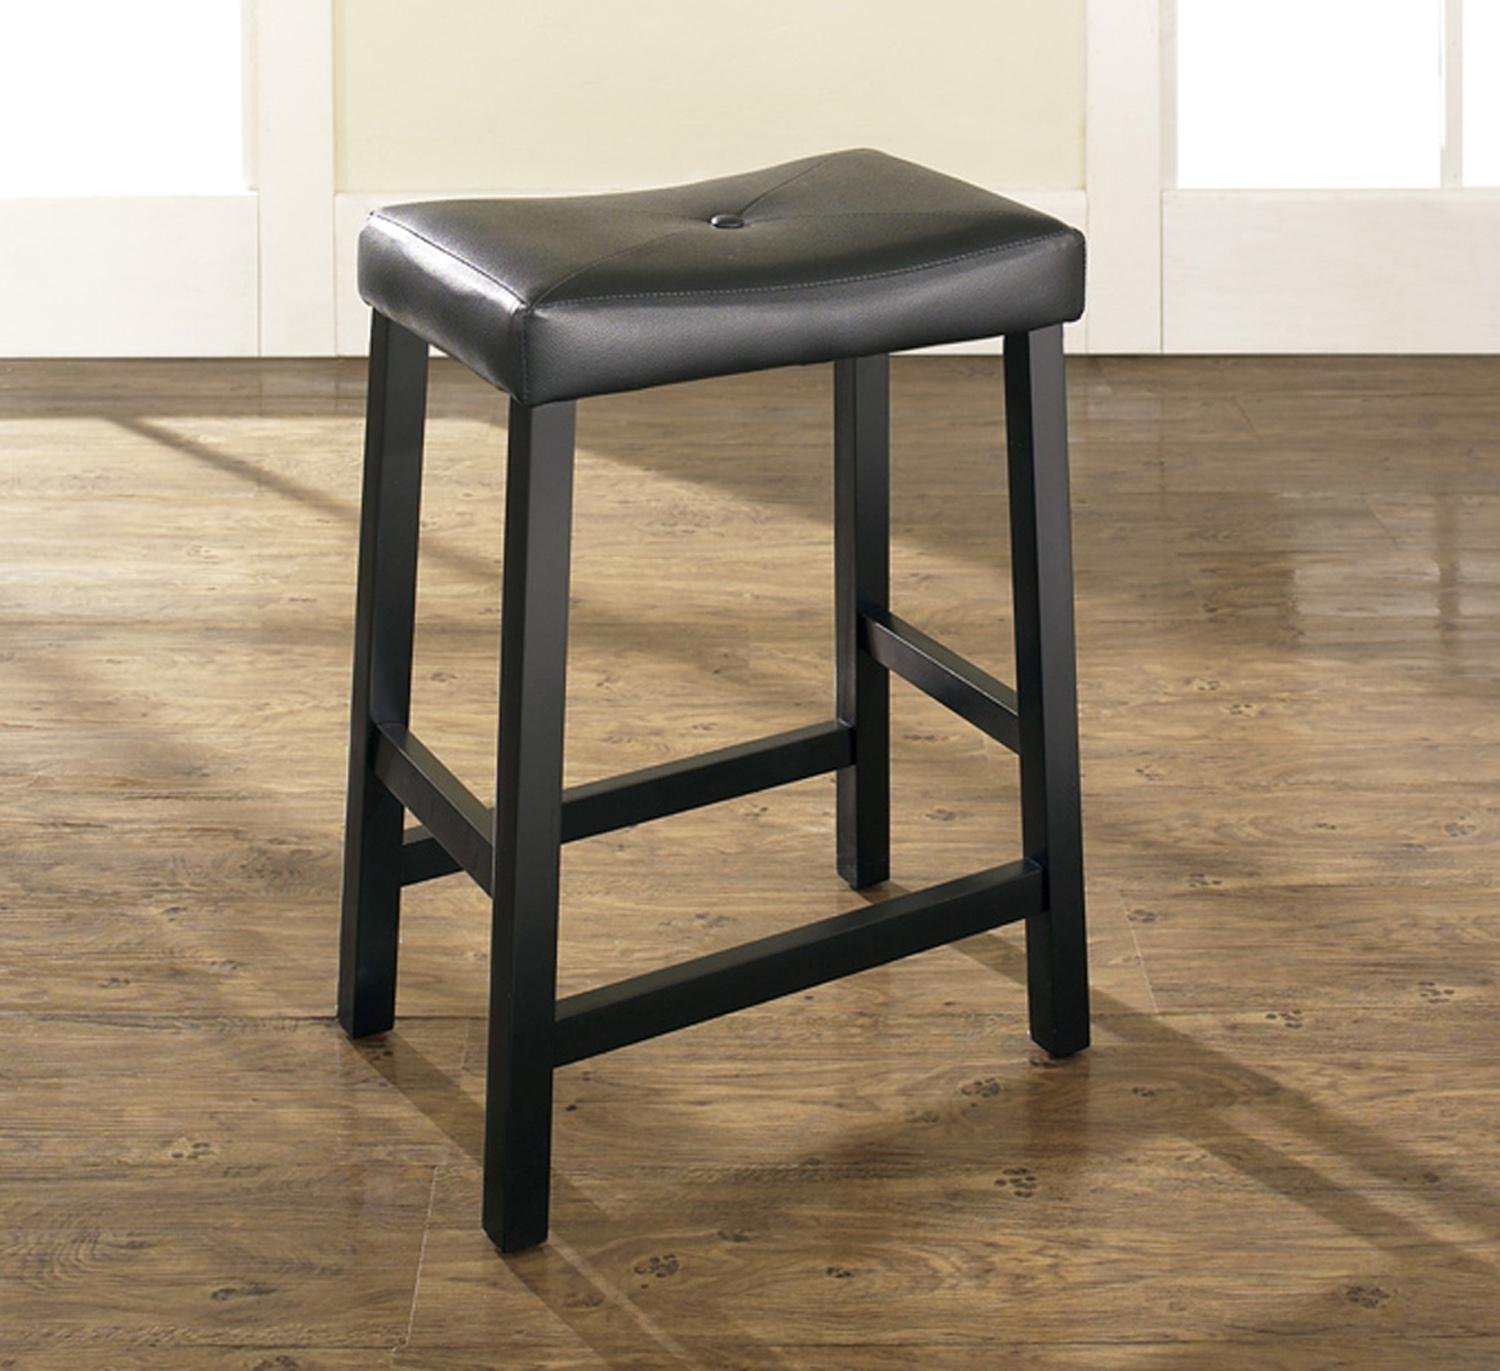 Crosley Upholstered Saddle Seat Bar Stool From 77 53 To